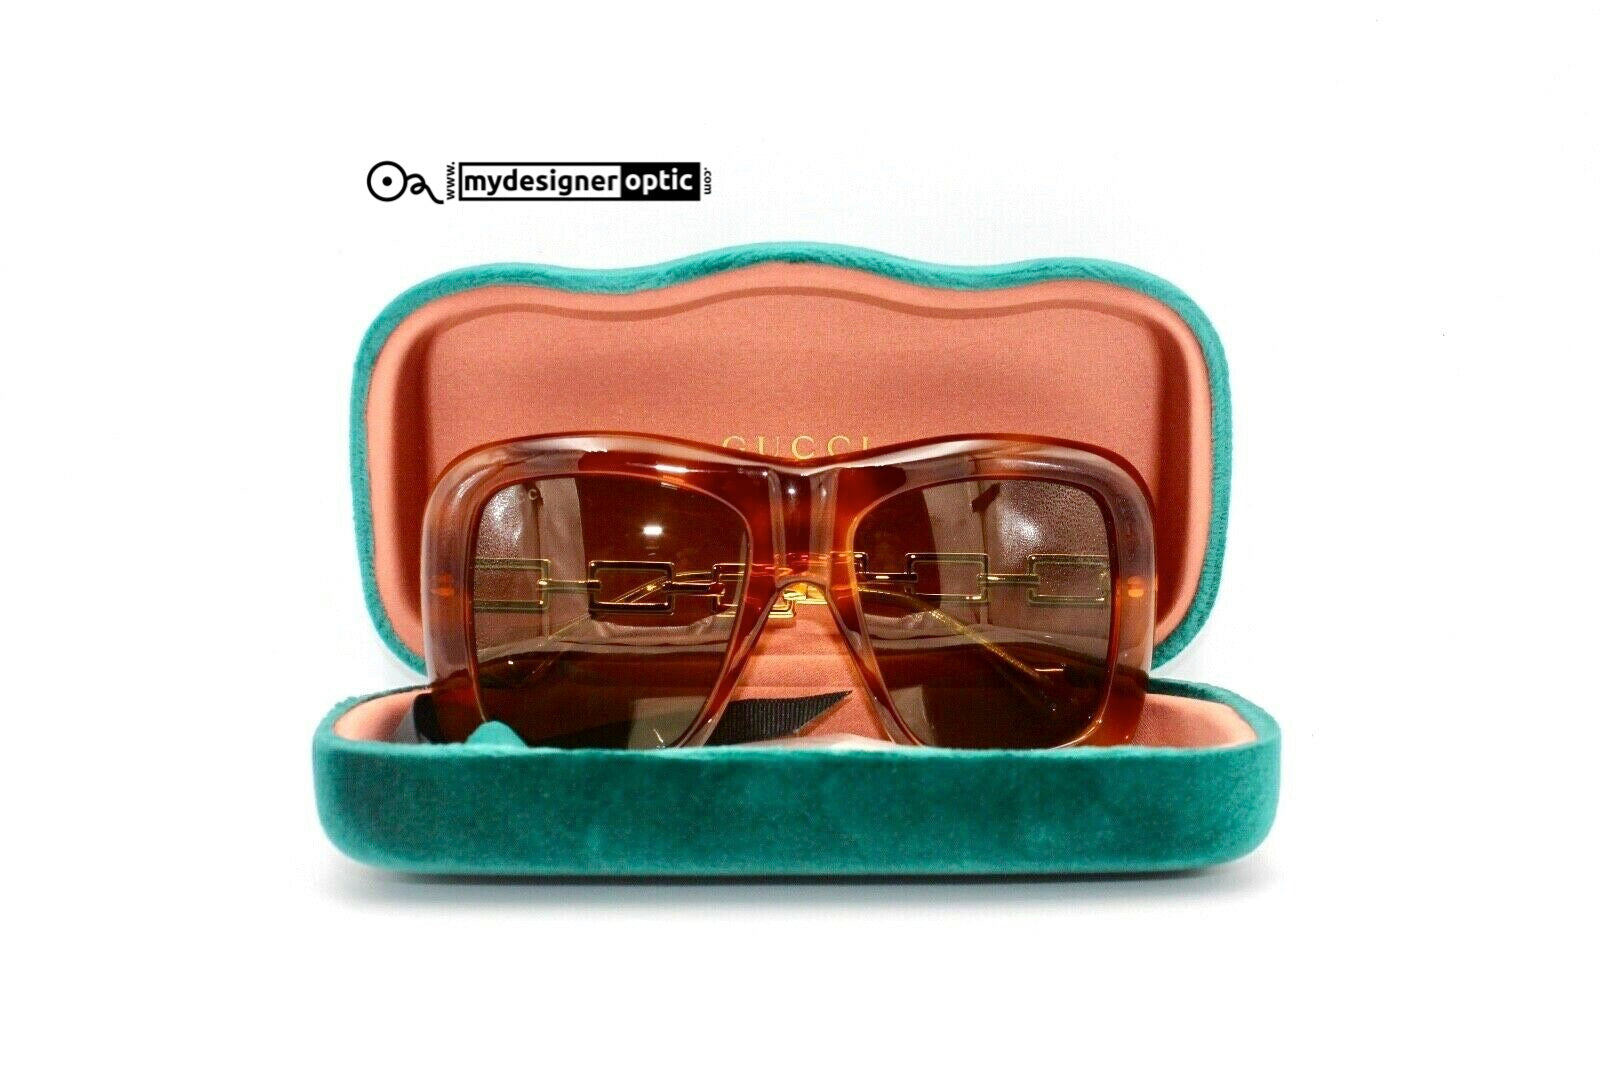 Gucci Sunglasses GG0499S 002 54-19-135 COVCB02330 Made in Italy - Mydesigneroptic